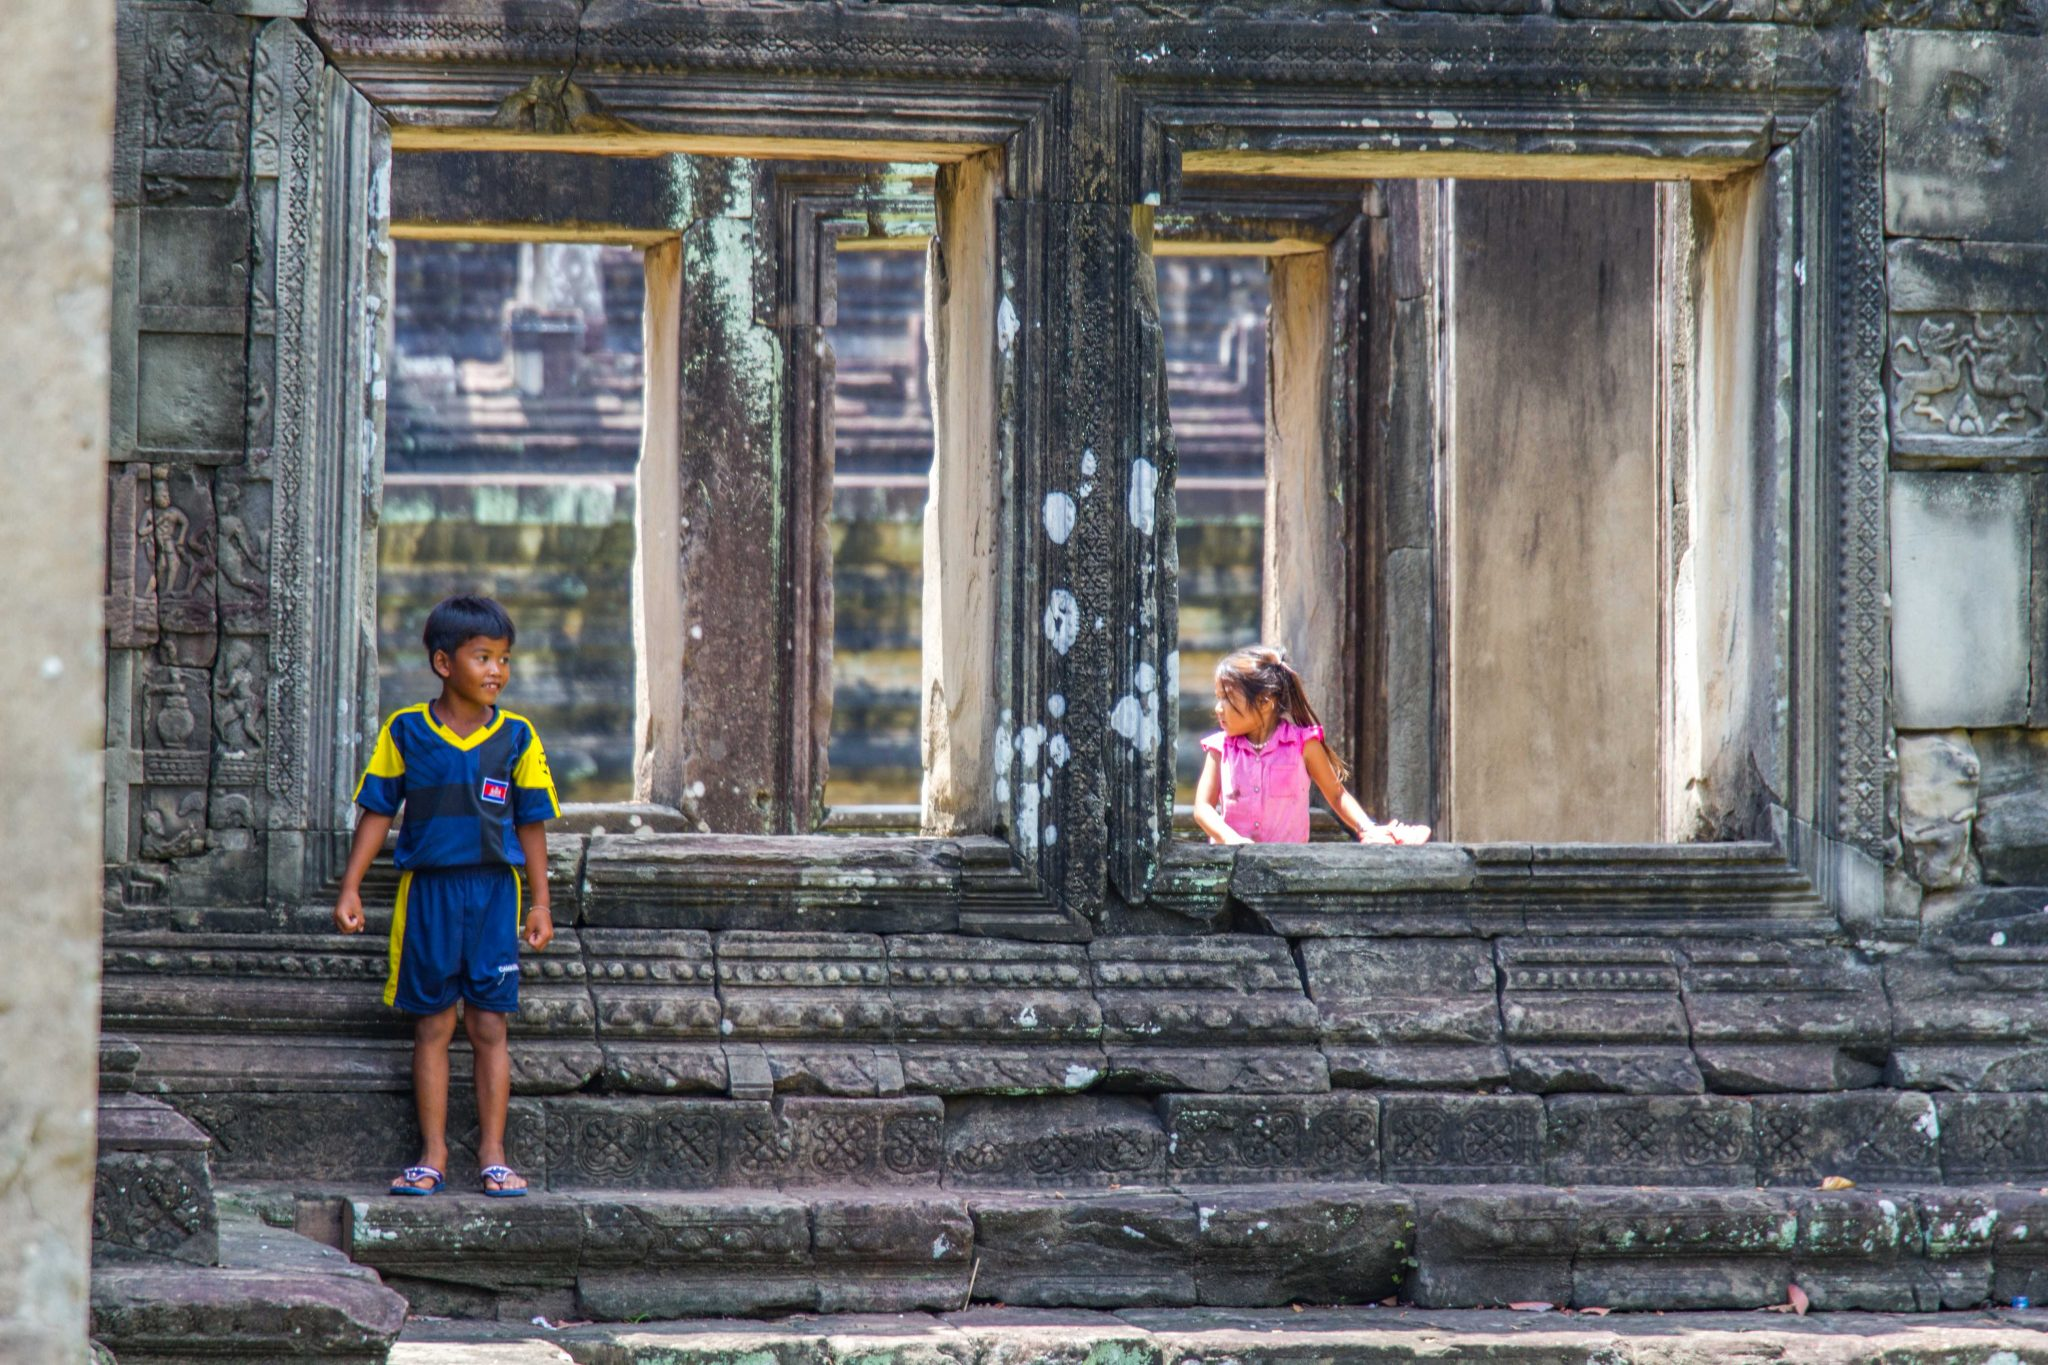 Cambodian Children Playing at Angkor Wat